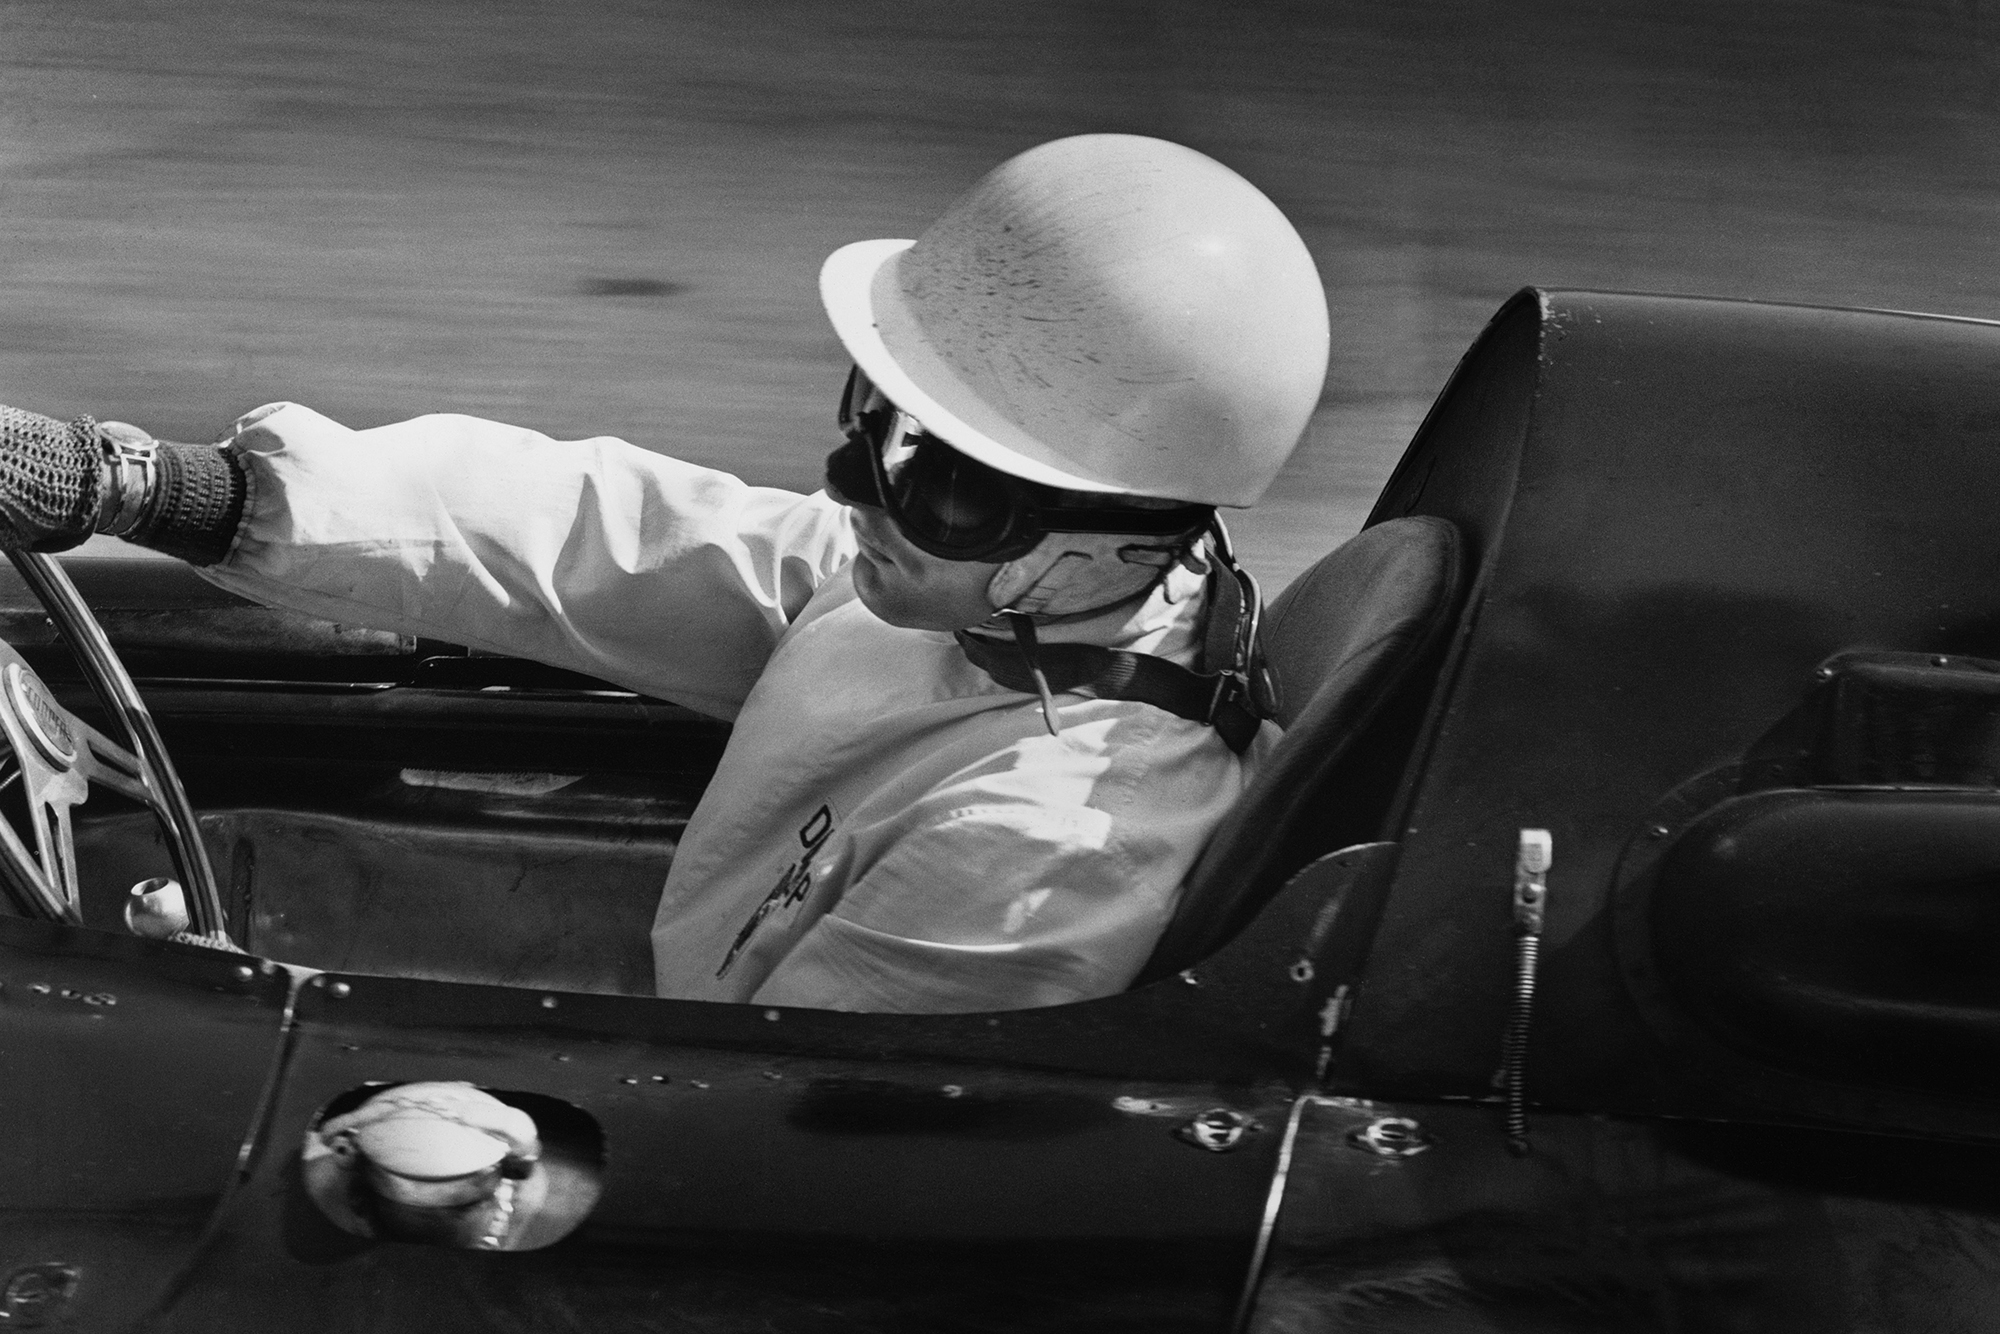 Stirling Moss at the wheel of his Cooper T51-Climax.